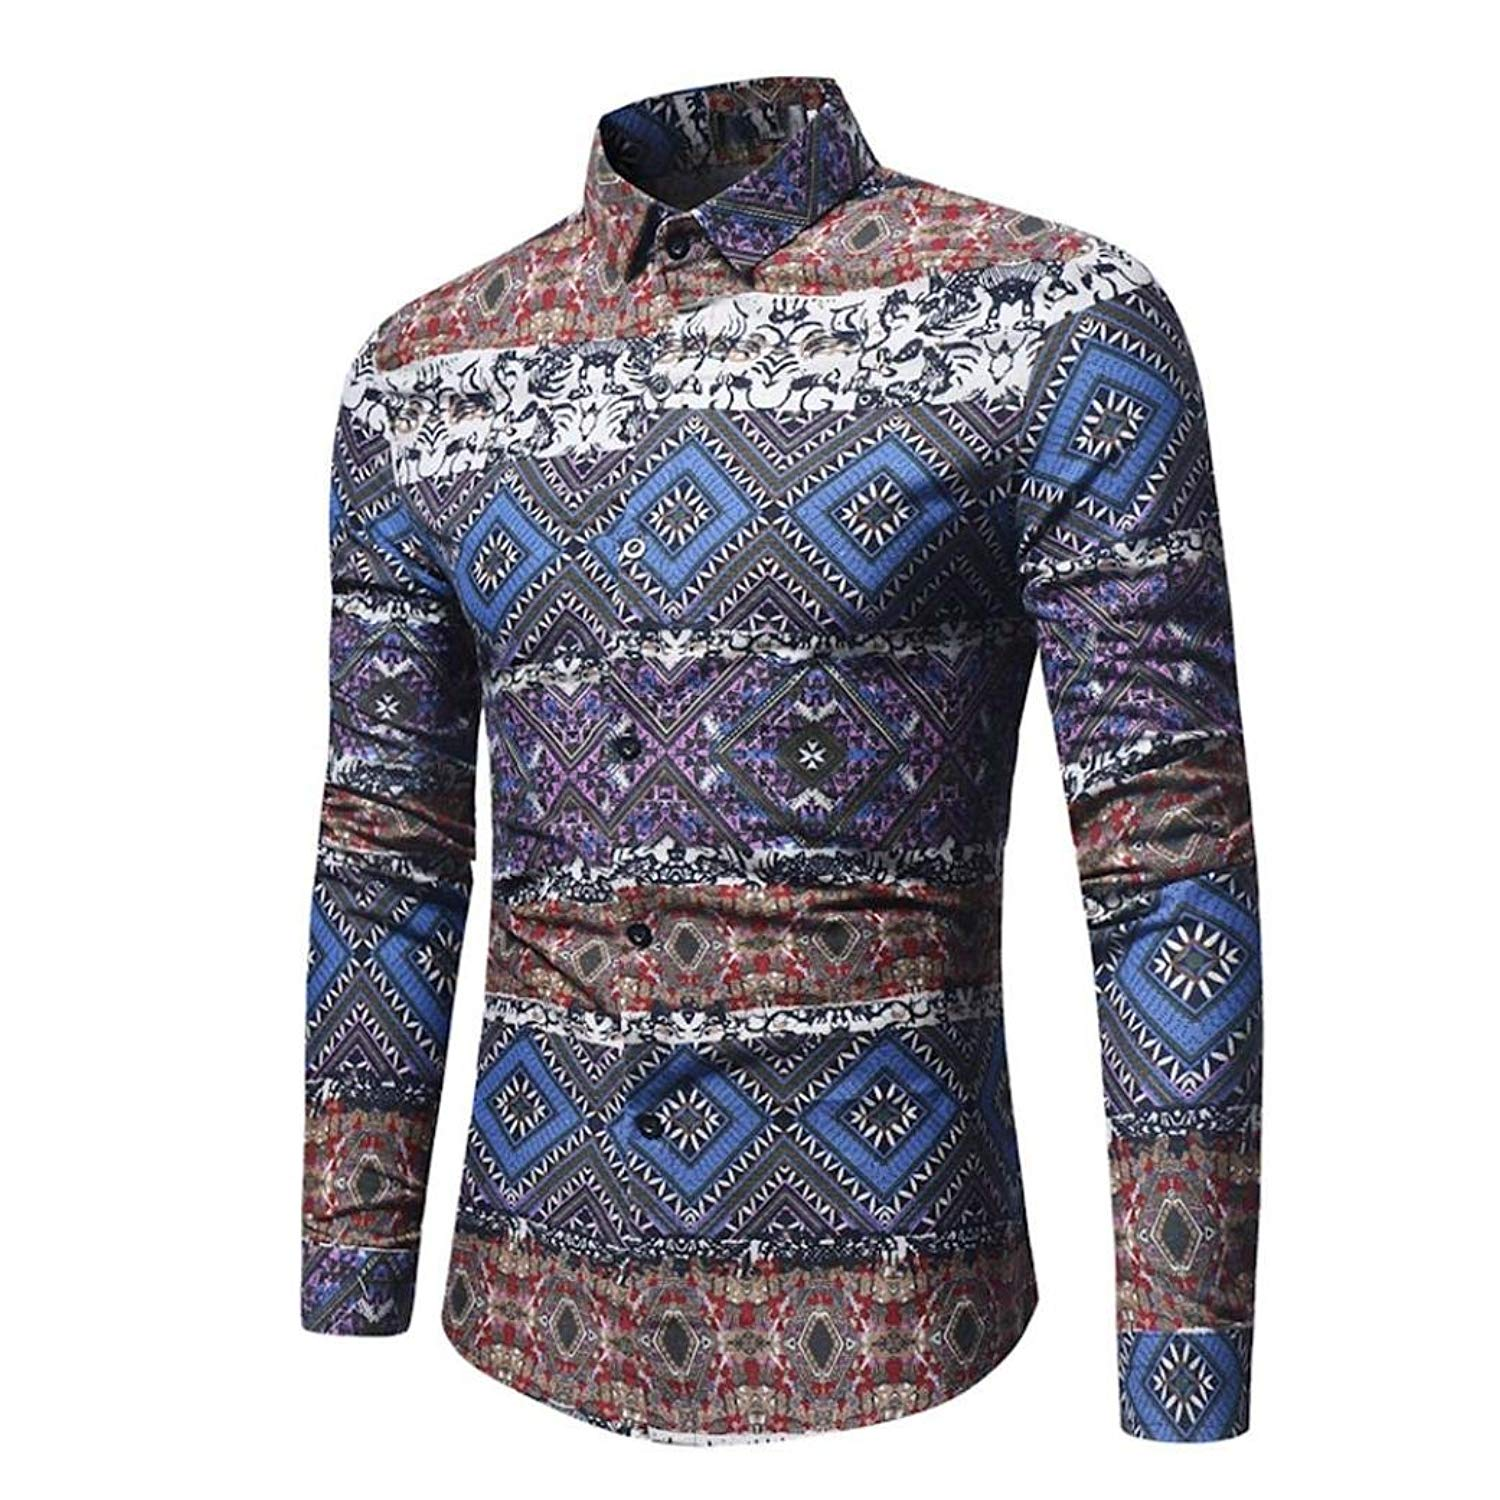 92e57f01 Get Quotations · Men's Retro Dress Shirt Ethnic Print Vintga Long Sleeve  Button Down Shirts Zulmaliu